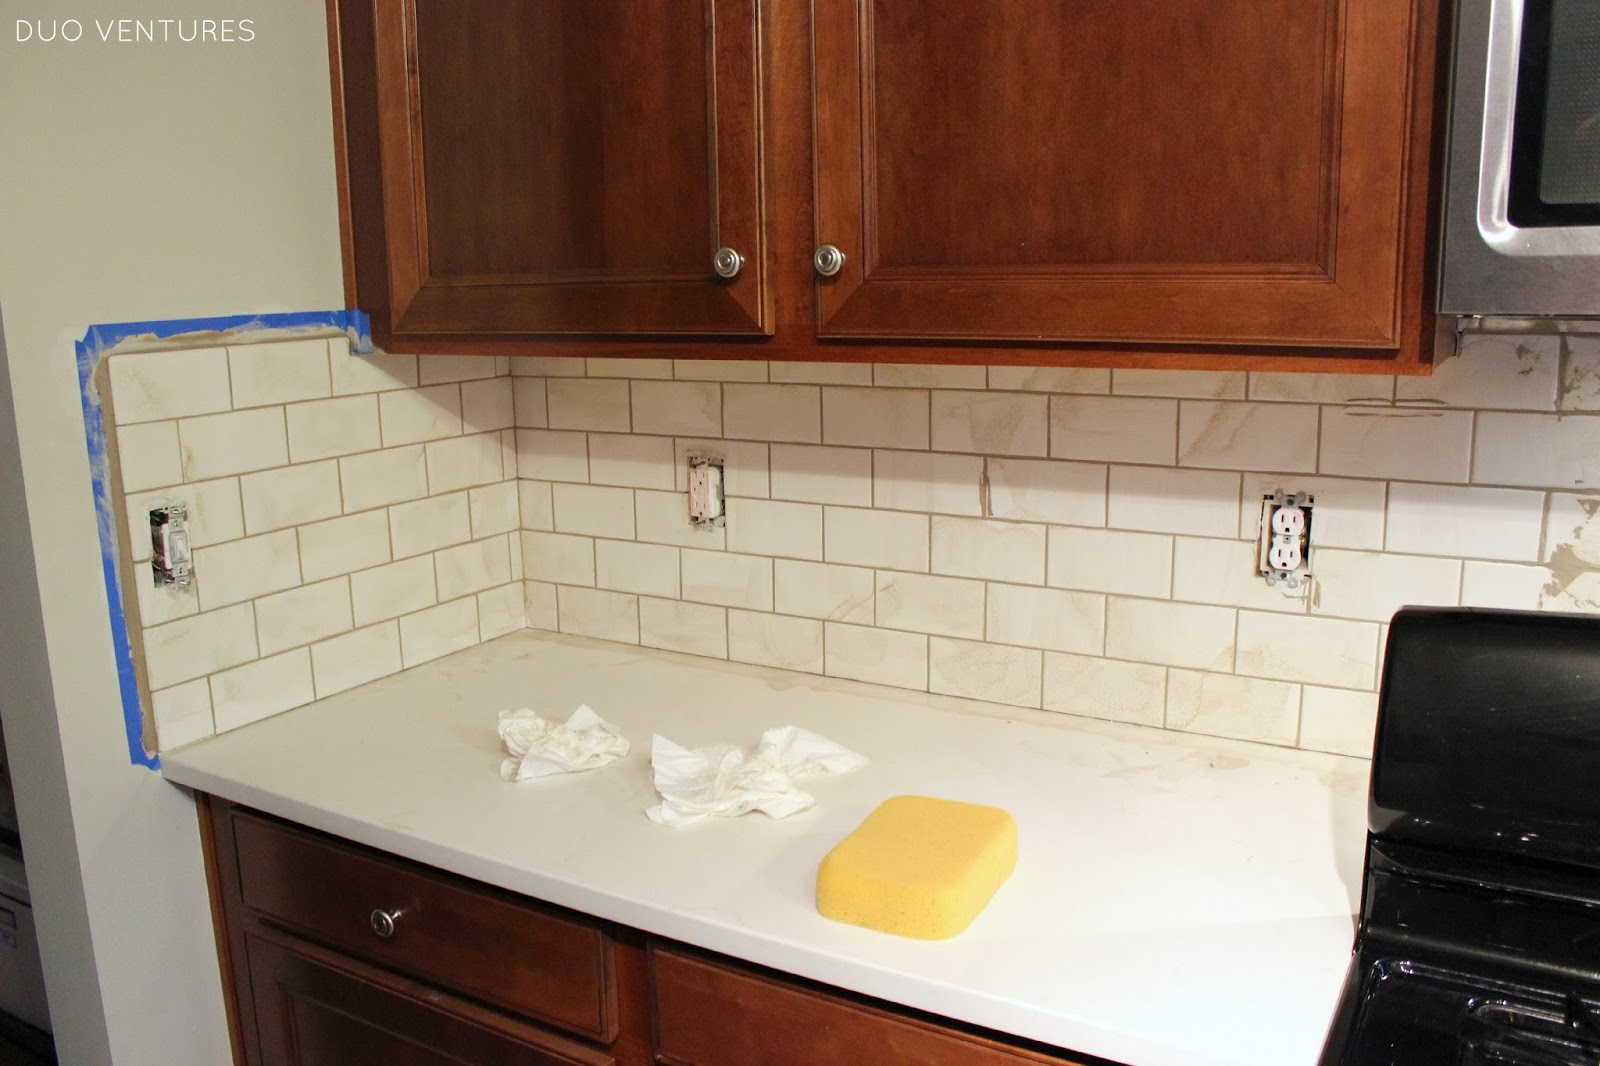 How Do I Seal Grout On Backsplash In Kitchen